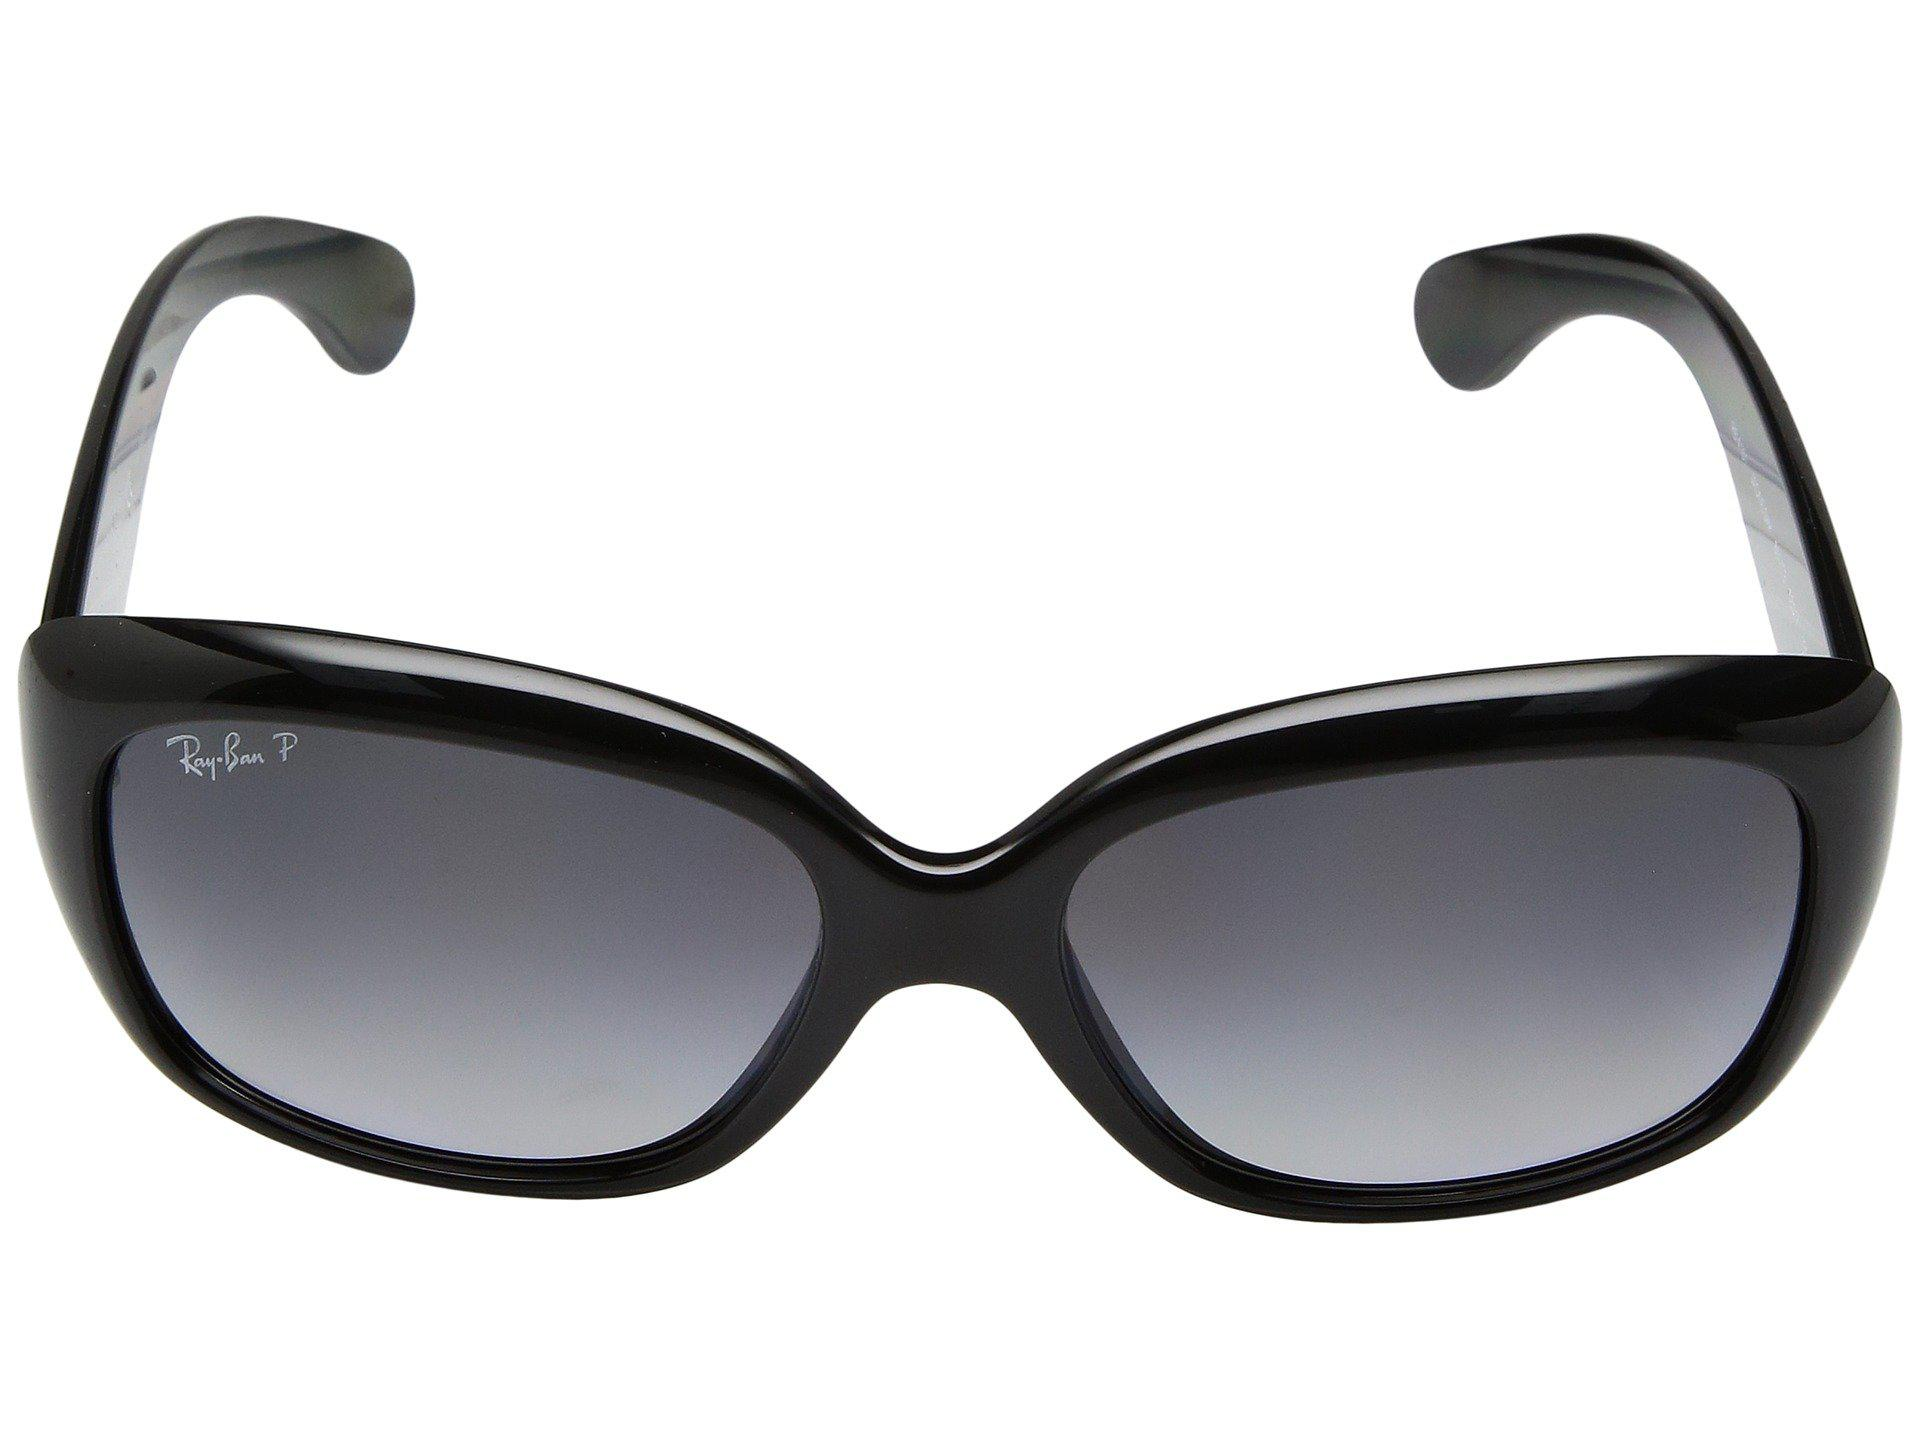 715872b1aa4 Ray-Ban - Black Rb4101 Jackie Ohh Sunglasses - Lyst. View fullscreen